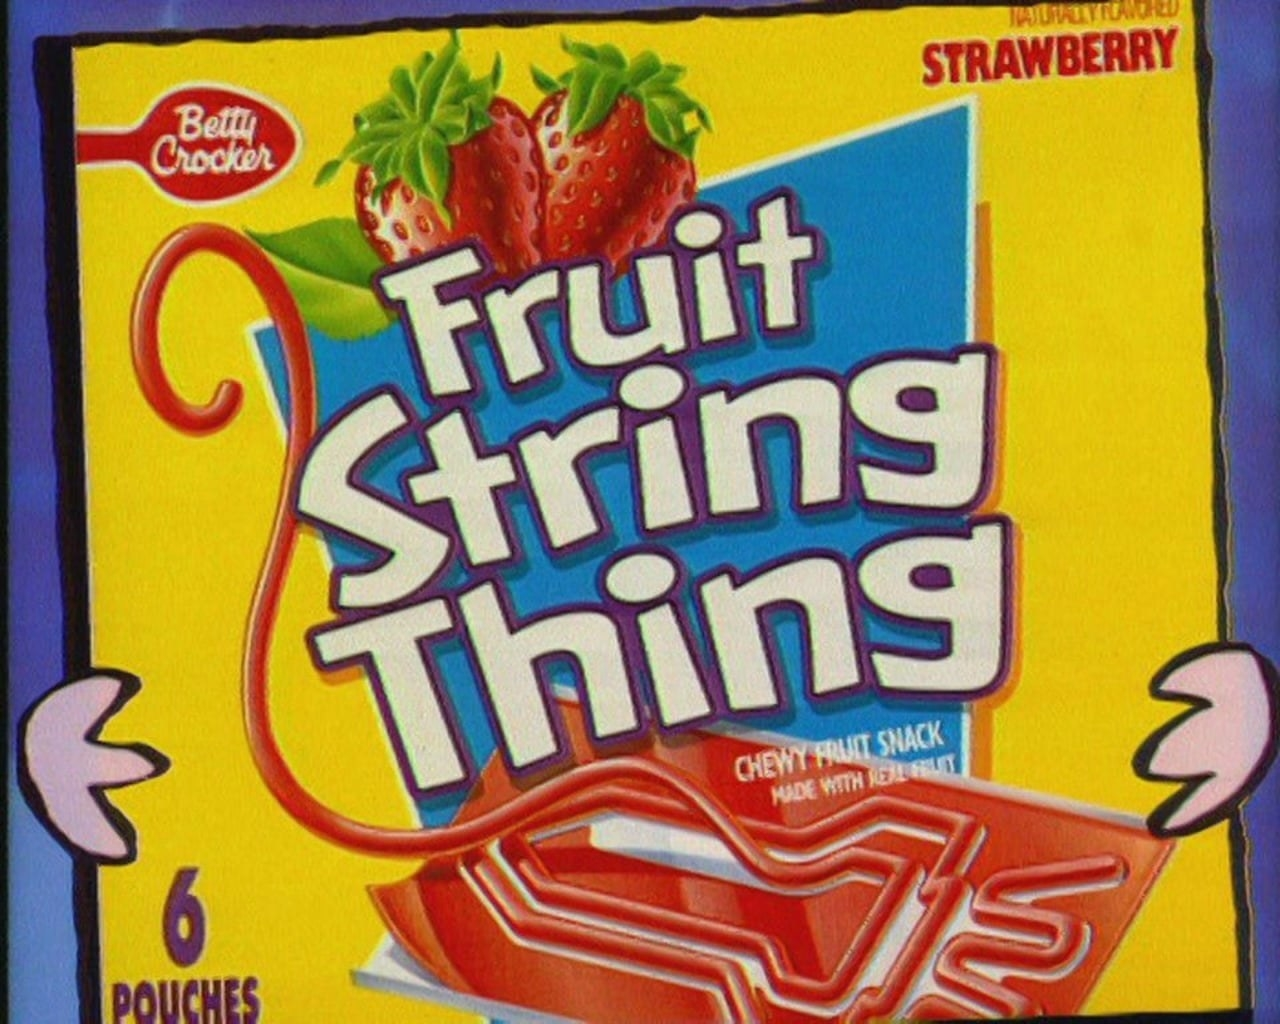 Everyone's favorite fruit snack that is impossible to get out of your teeth is available on Amazon.